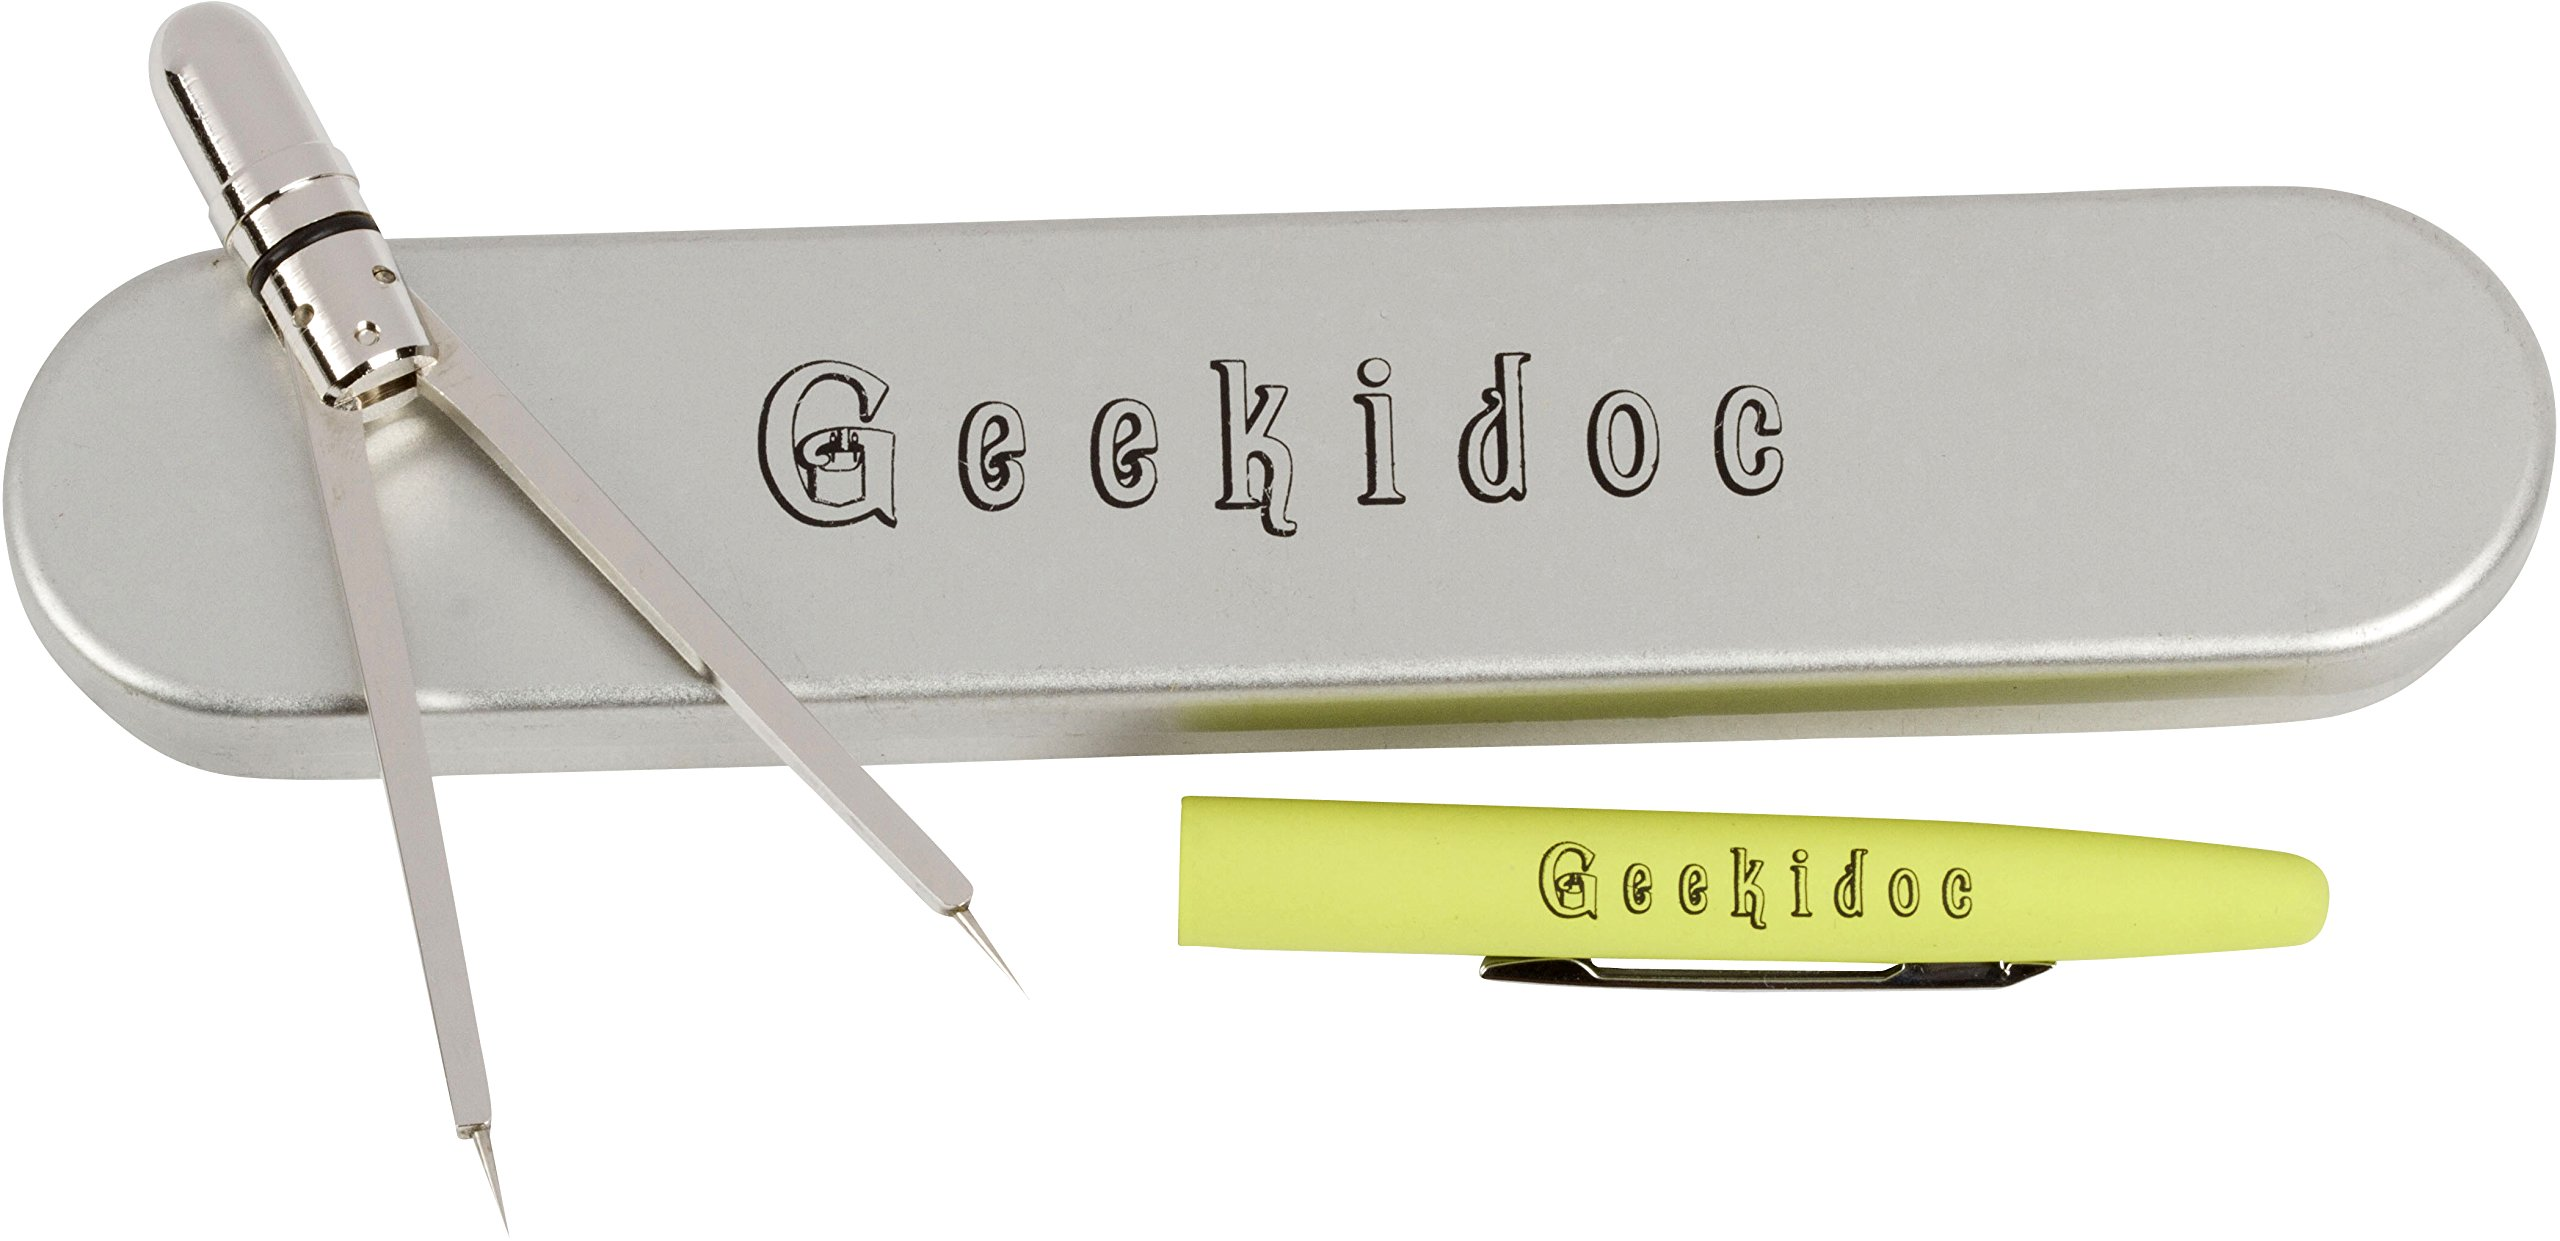 EKG calipers - ECG pen style caliper - Geekidoc quality, metal, designed to last entire career (Yellow-Green)